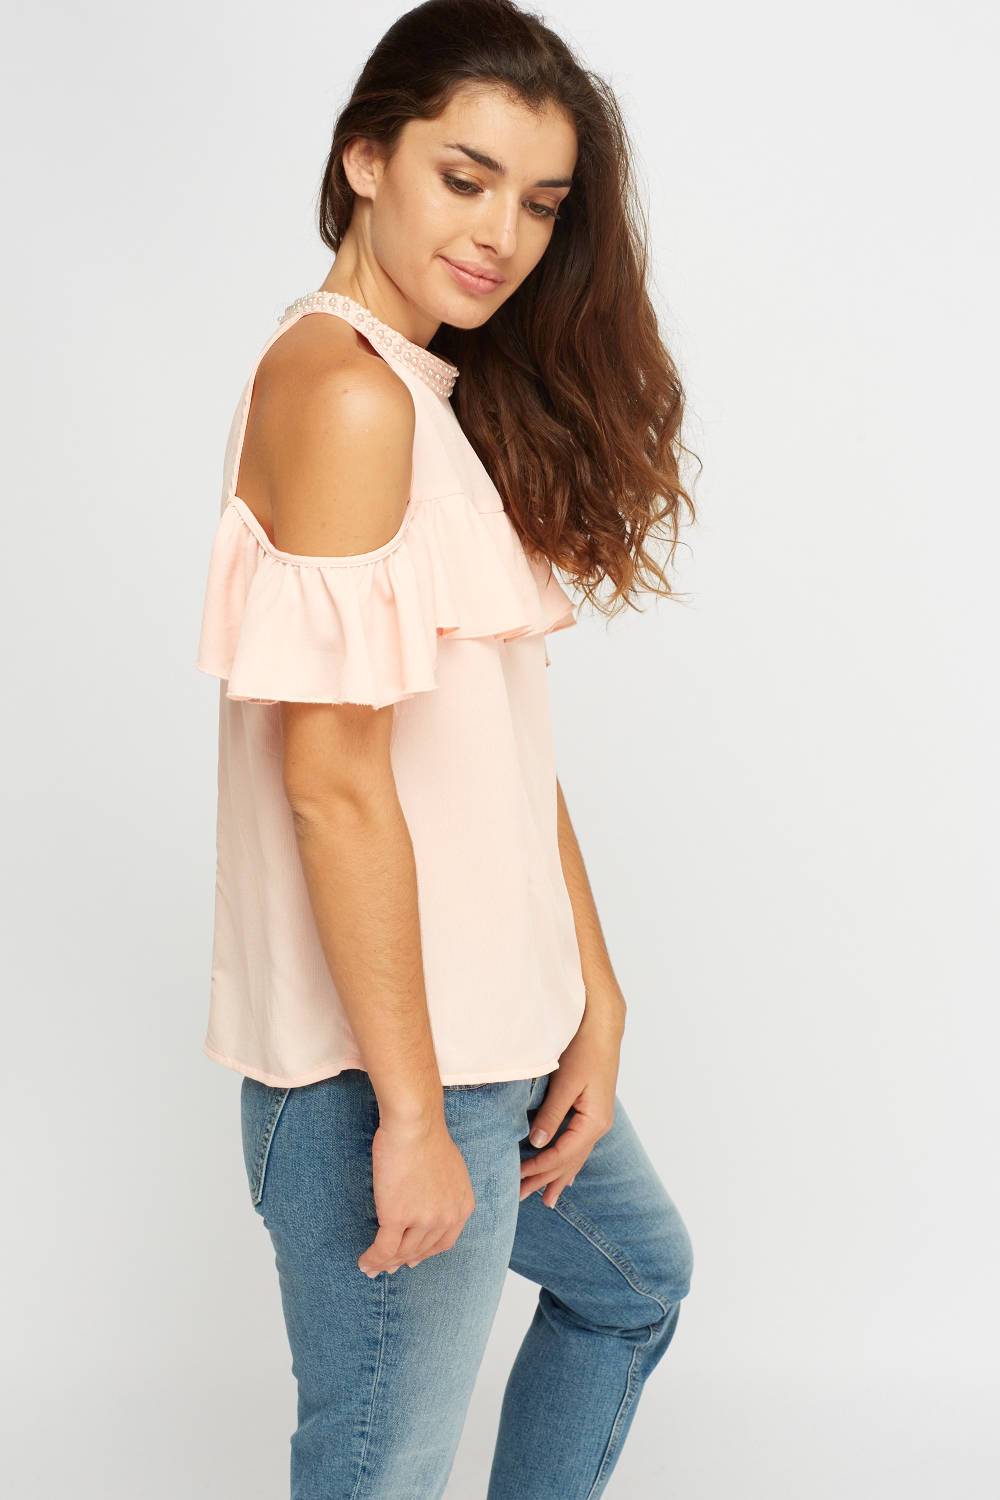 62a8f92d8777be Pearl Embellished Cold Shoulder Top - Just £5